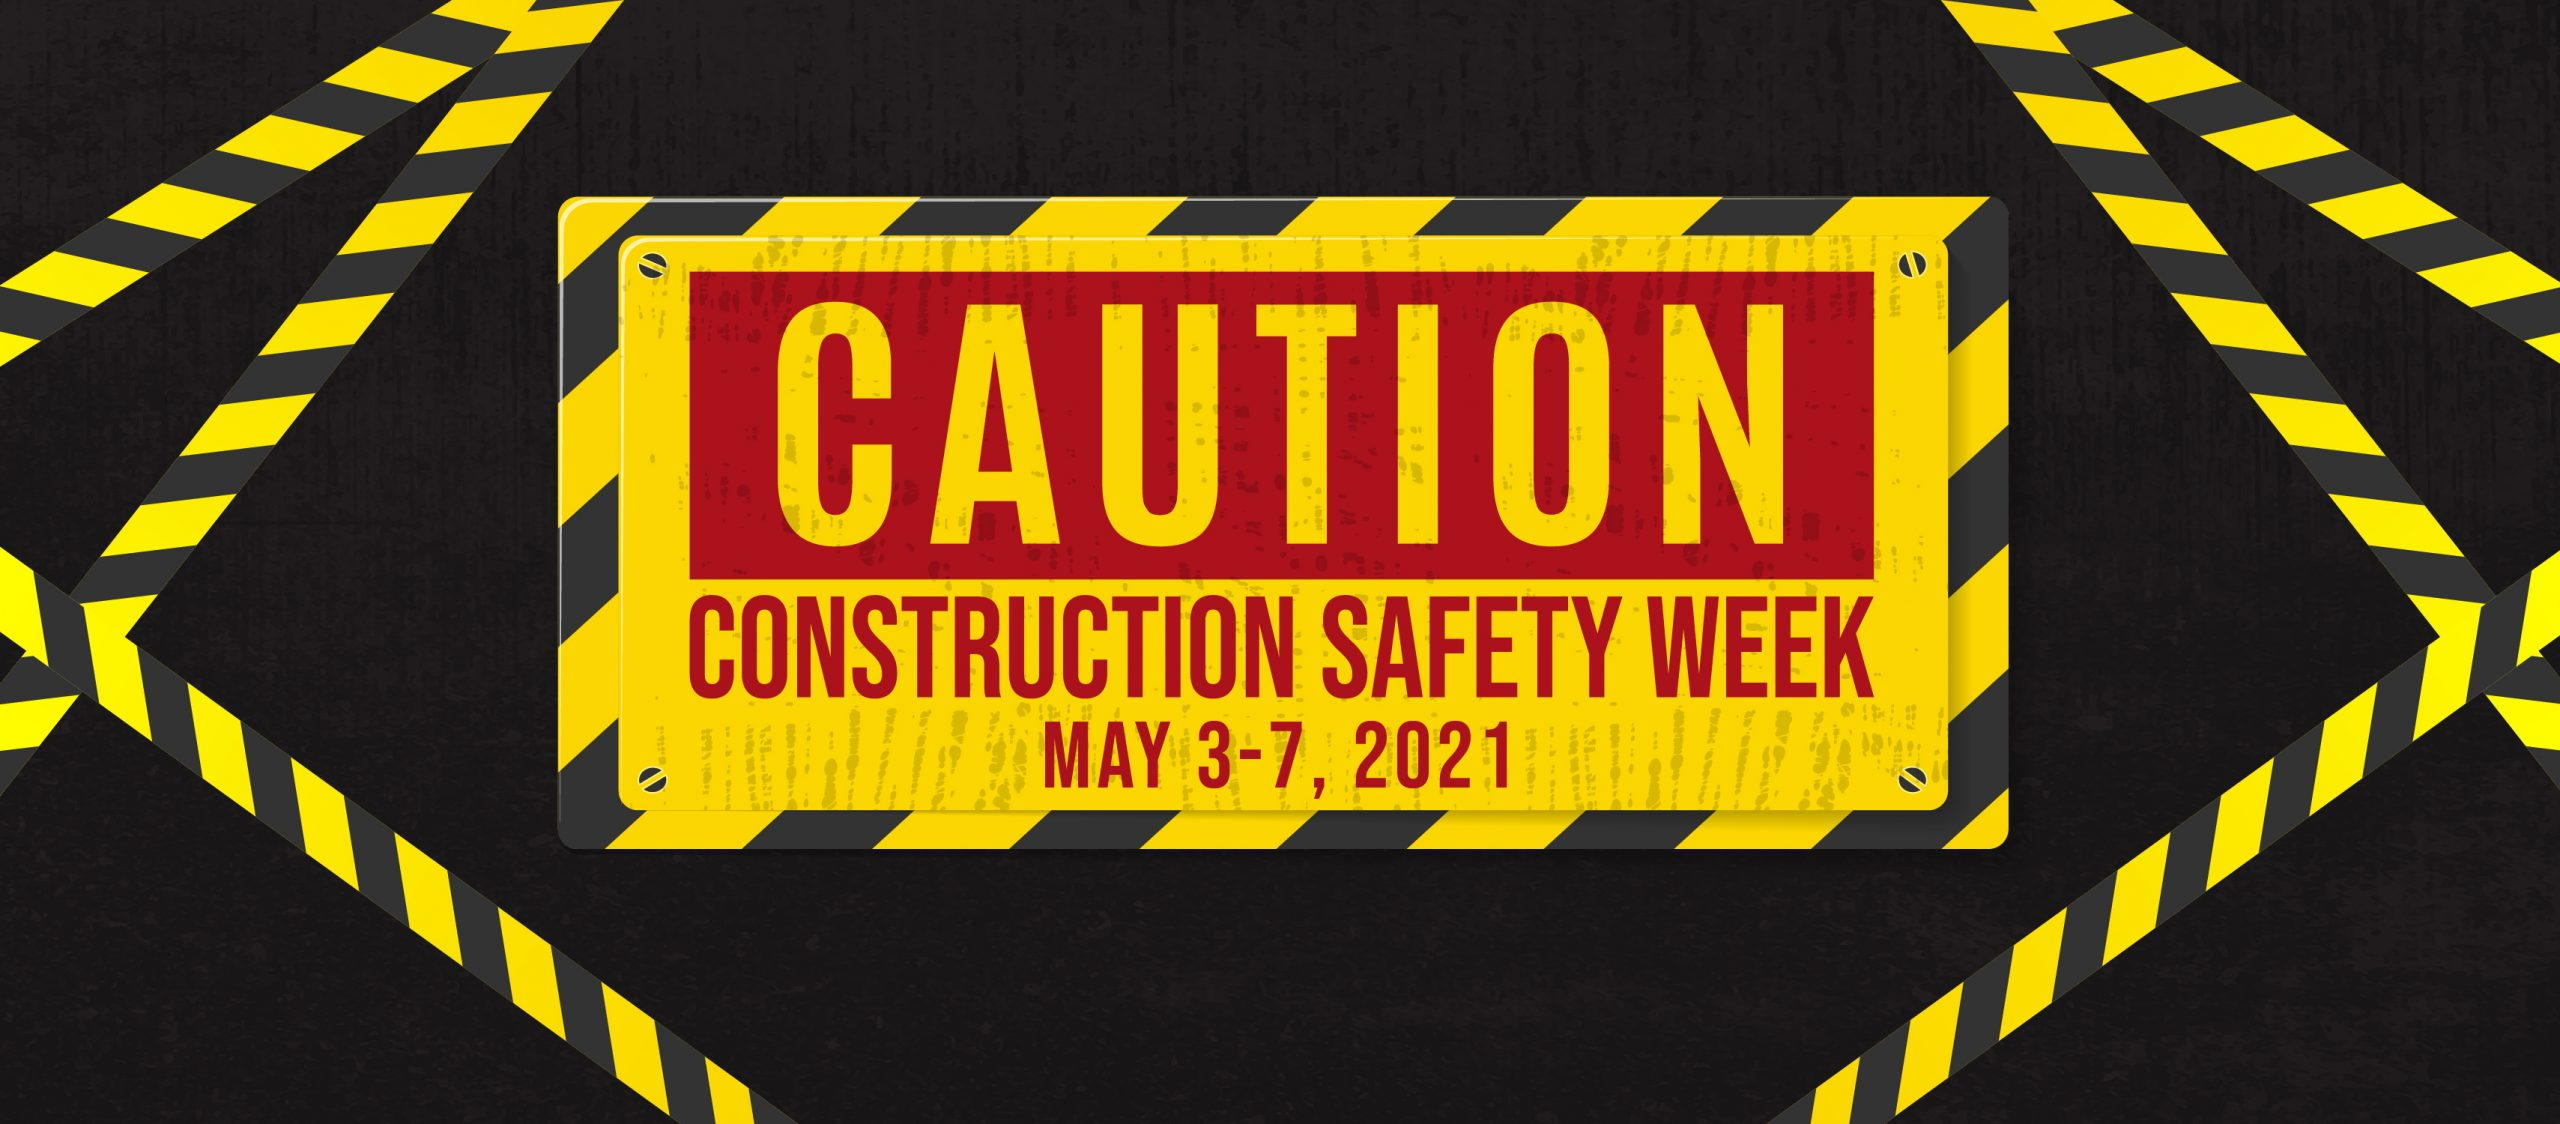 National Construction Safety Week